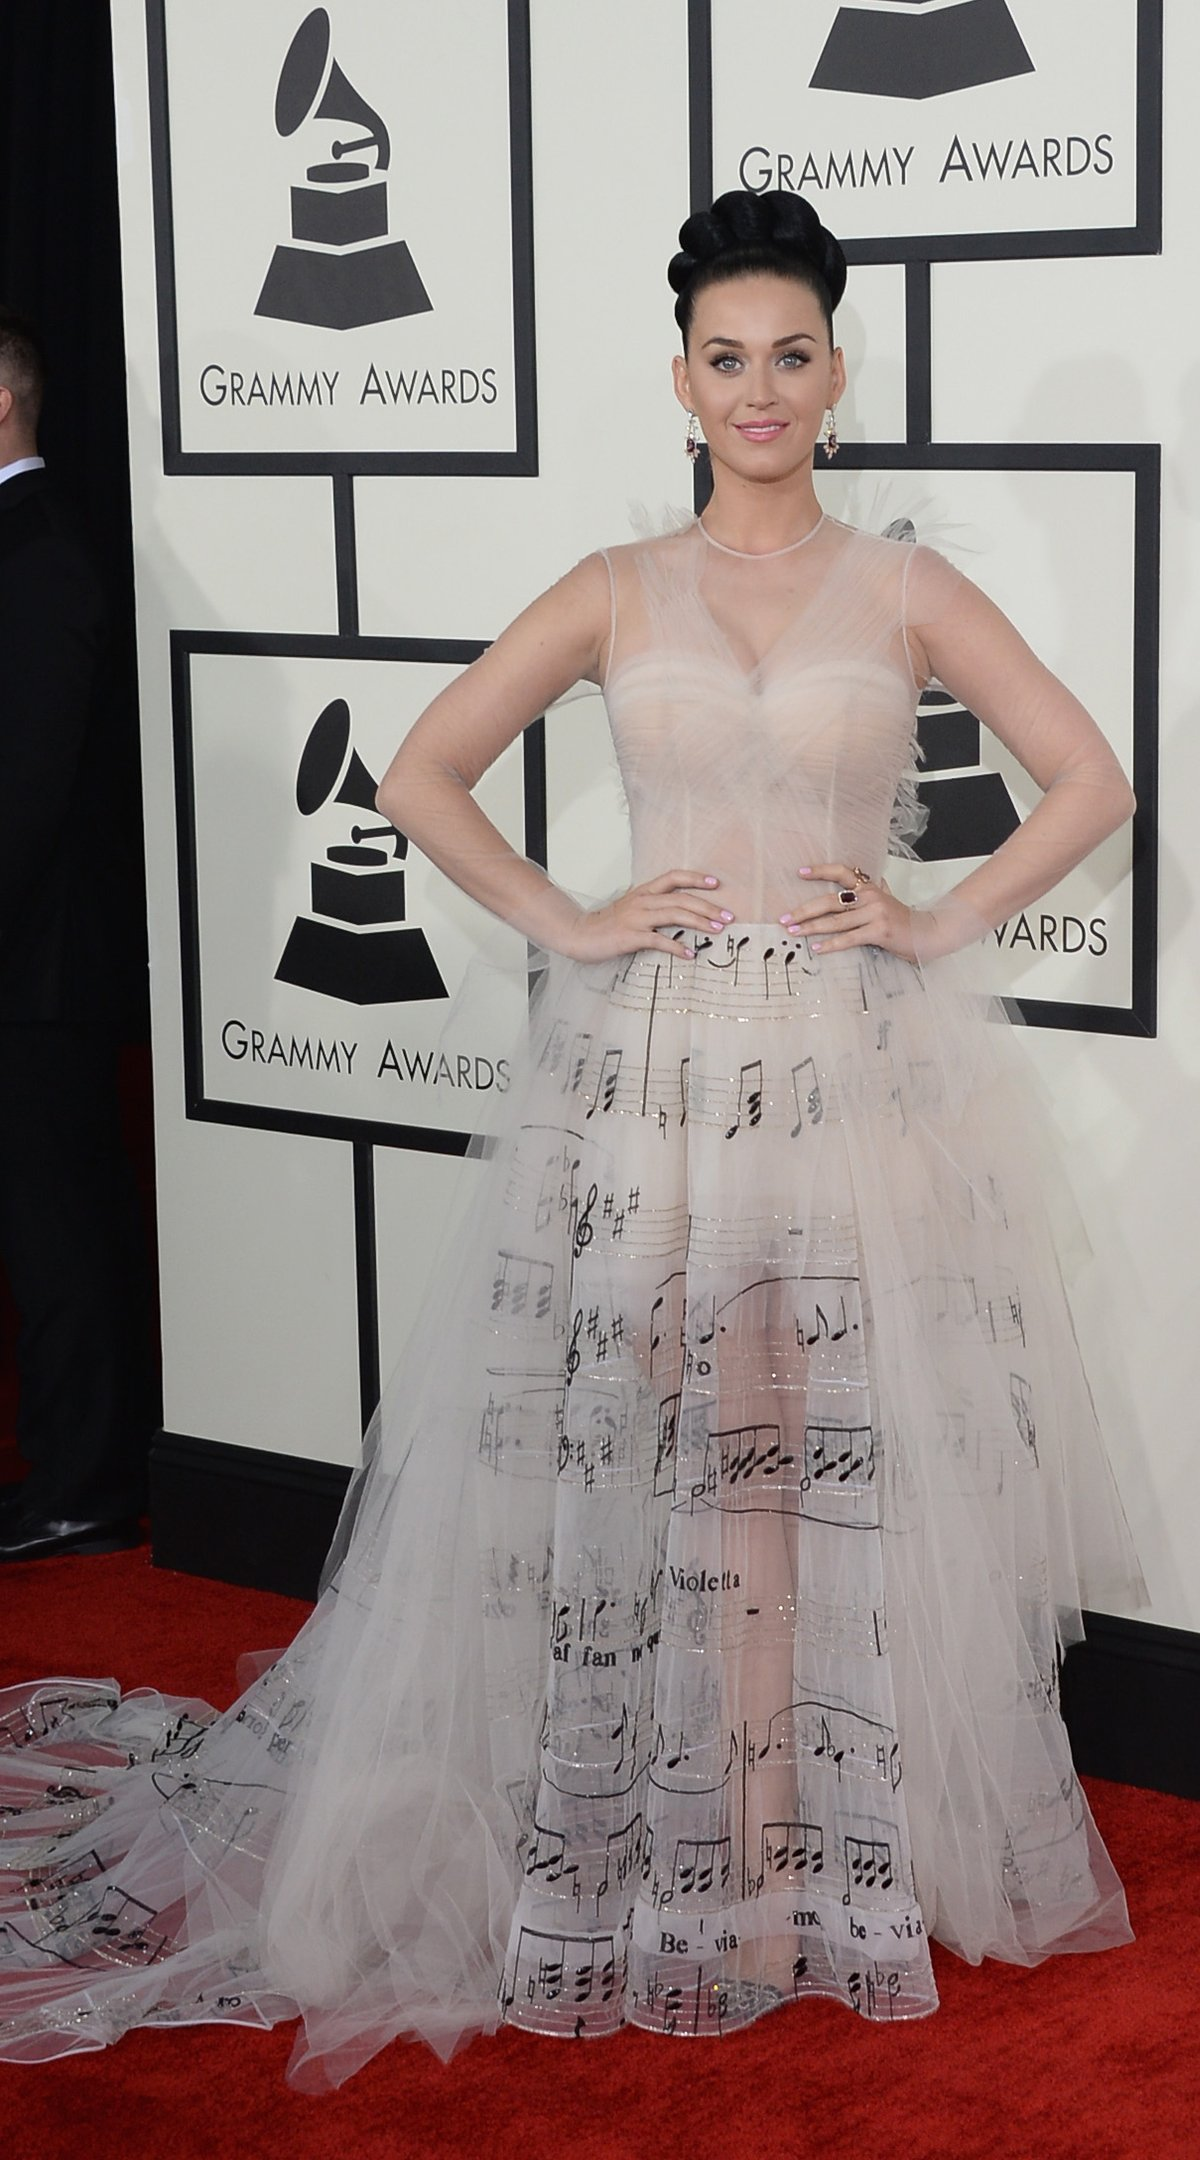 Katy Perry at Grammys - Verdi La traviata dress